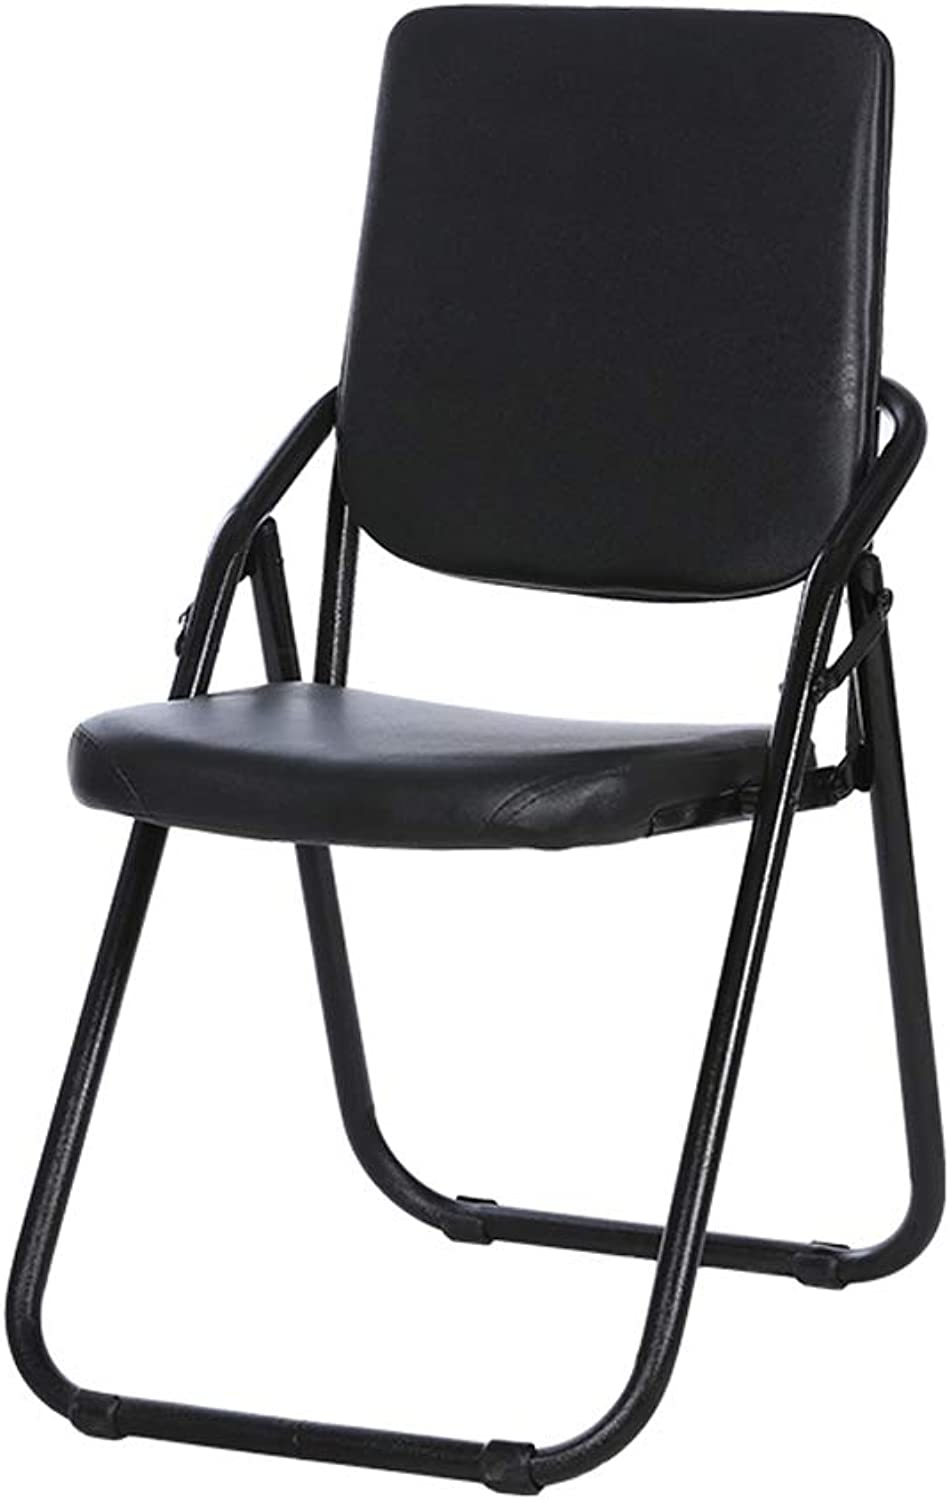 LLYU Black Folding Chair Portable Storage Home Fashion Creative Comfortable Soft Chair, Conference Computer and Dining Chair bar Stool